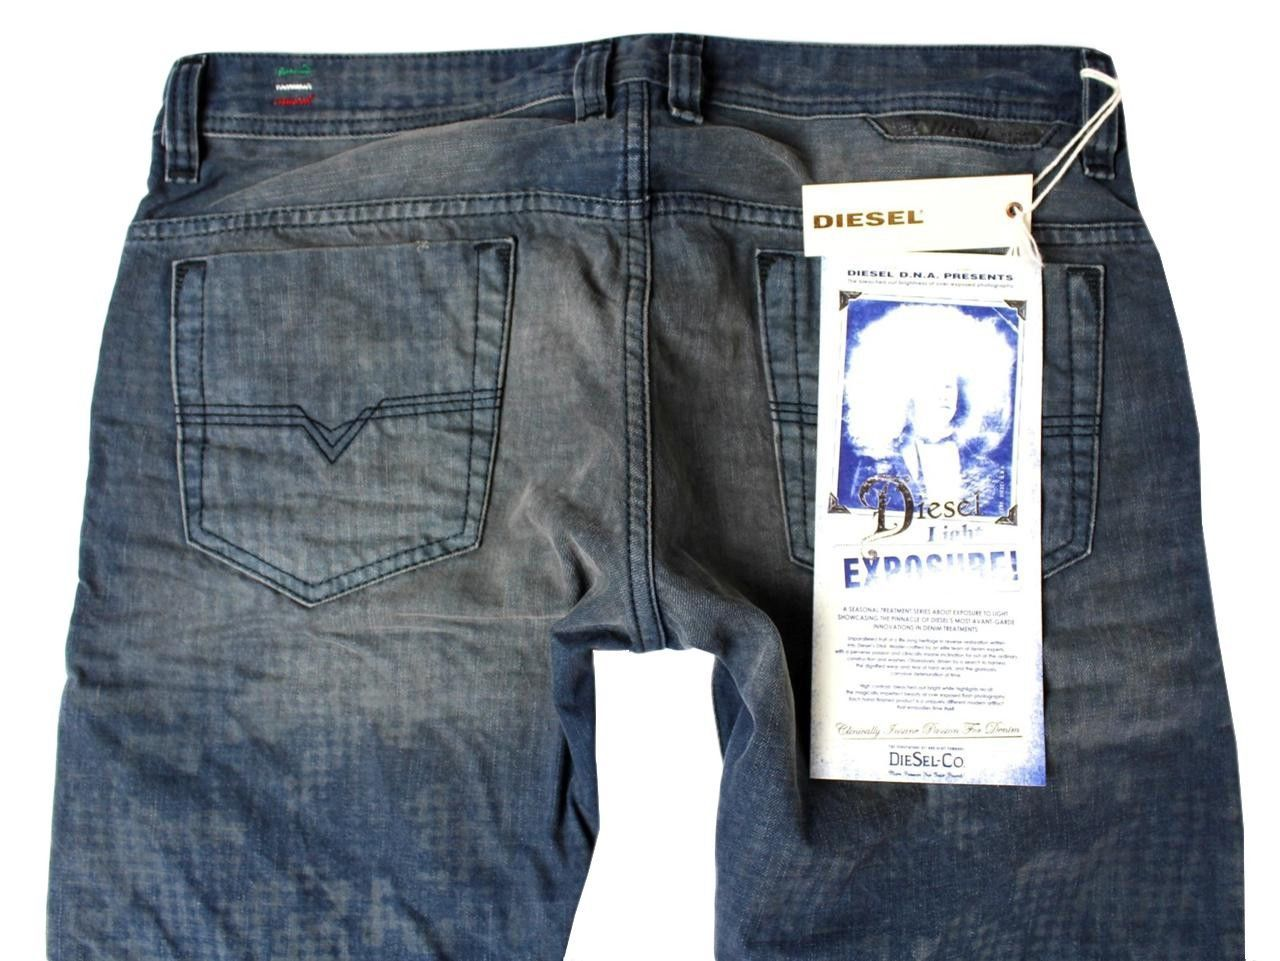 NEW DIESEL MEN'S PREMIUM DENIM REGULAR SLIM STRAIGHT DESIGNER JEANS SAFADO 0811M